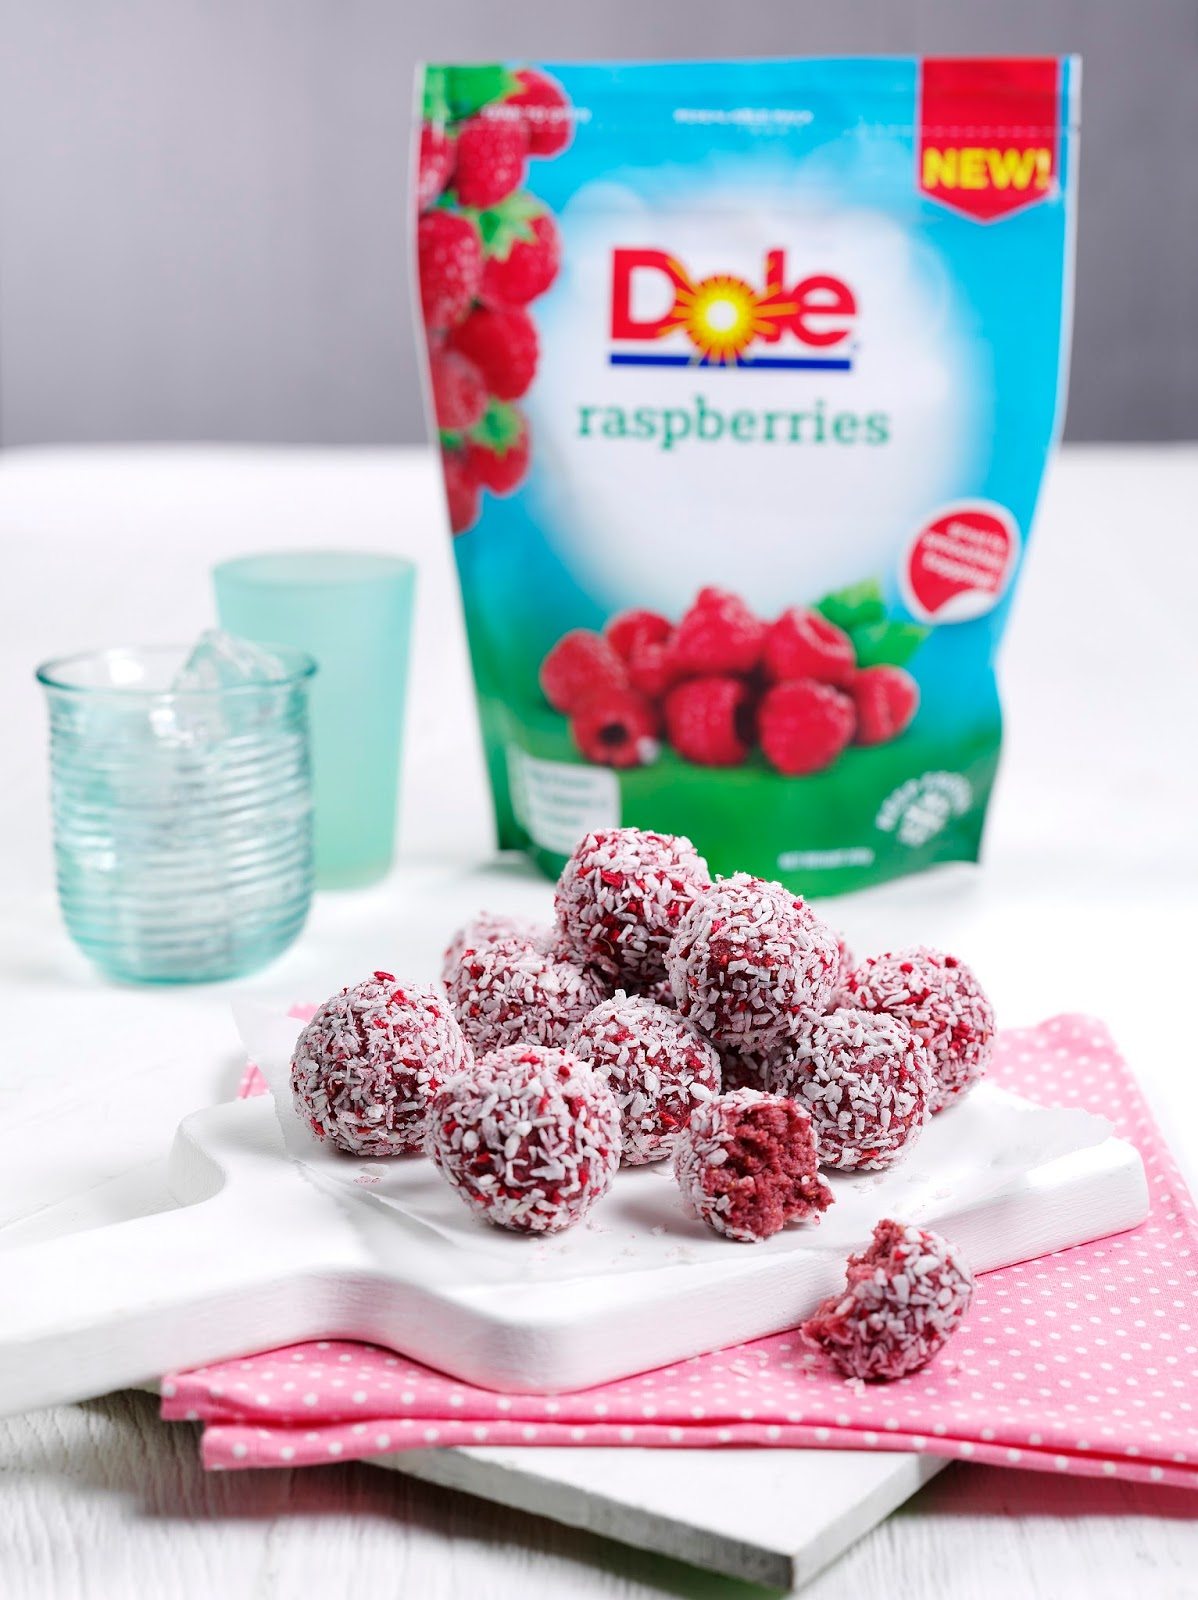 How To Make Raspberry Coconut Energy Balls